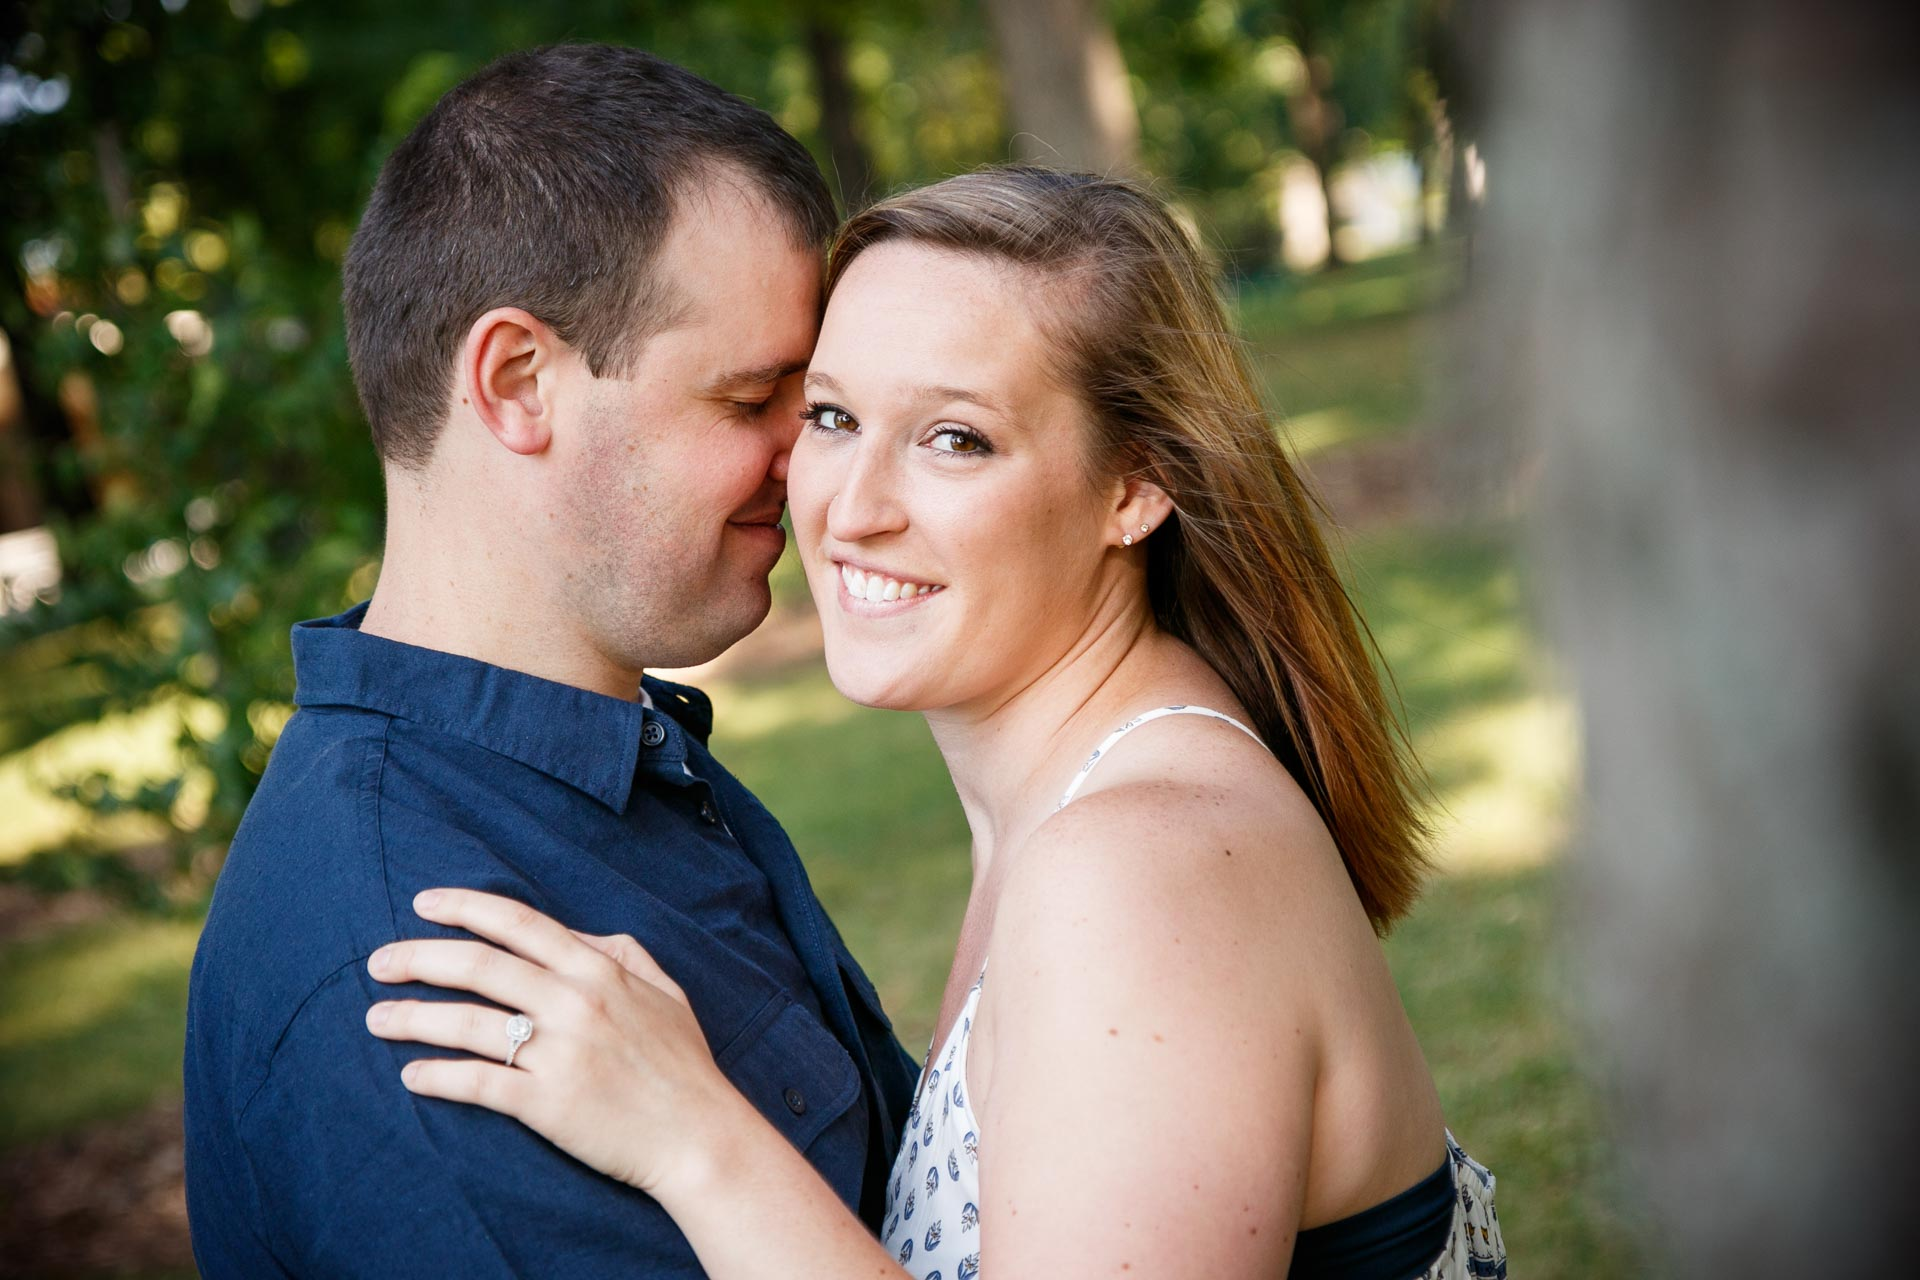 engagement-photos-riverside-park-neenah-adam-shea-photography-green-bay-appleton-neenah-photographer-4.jpg